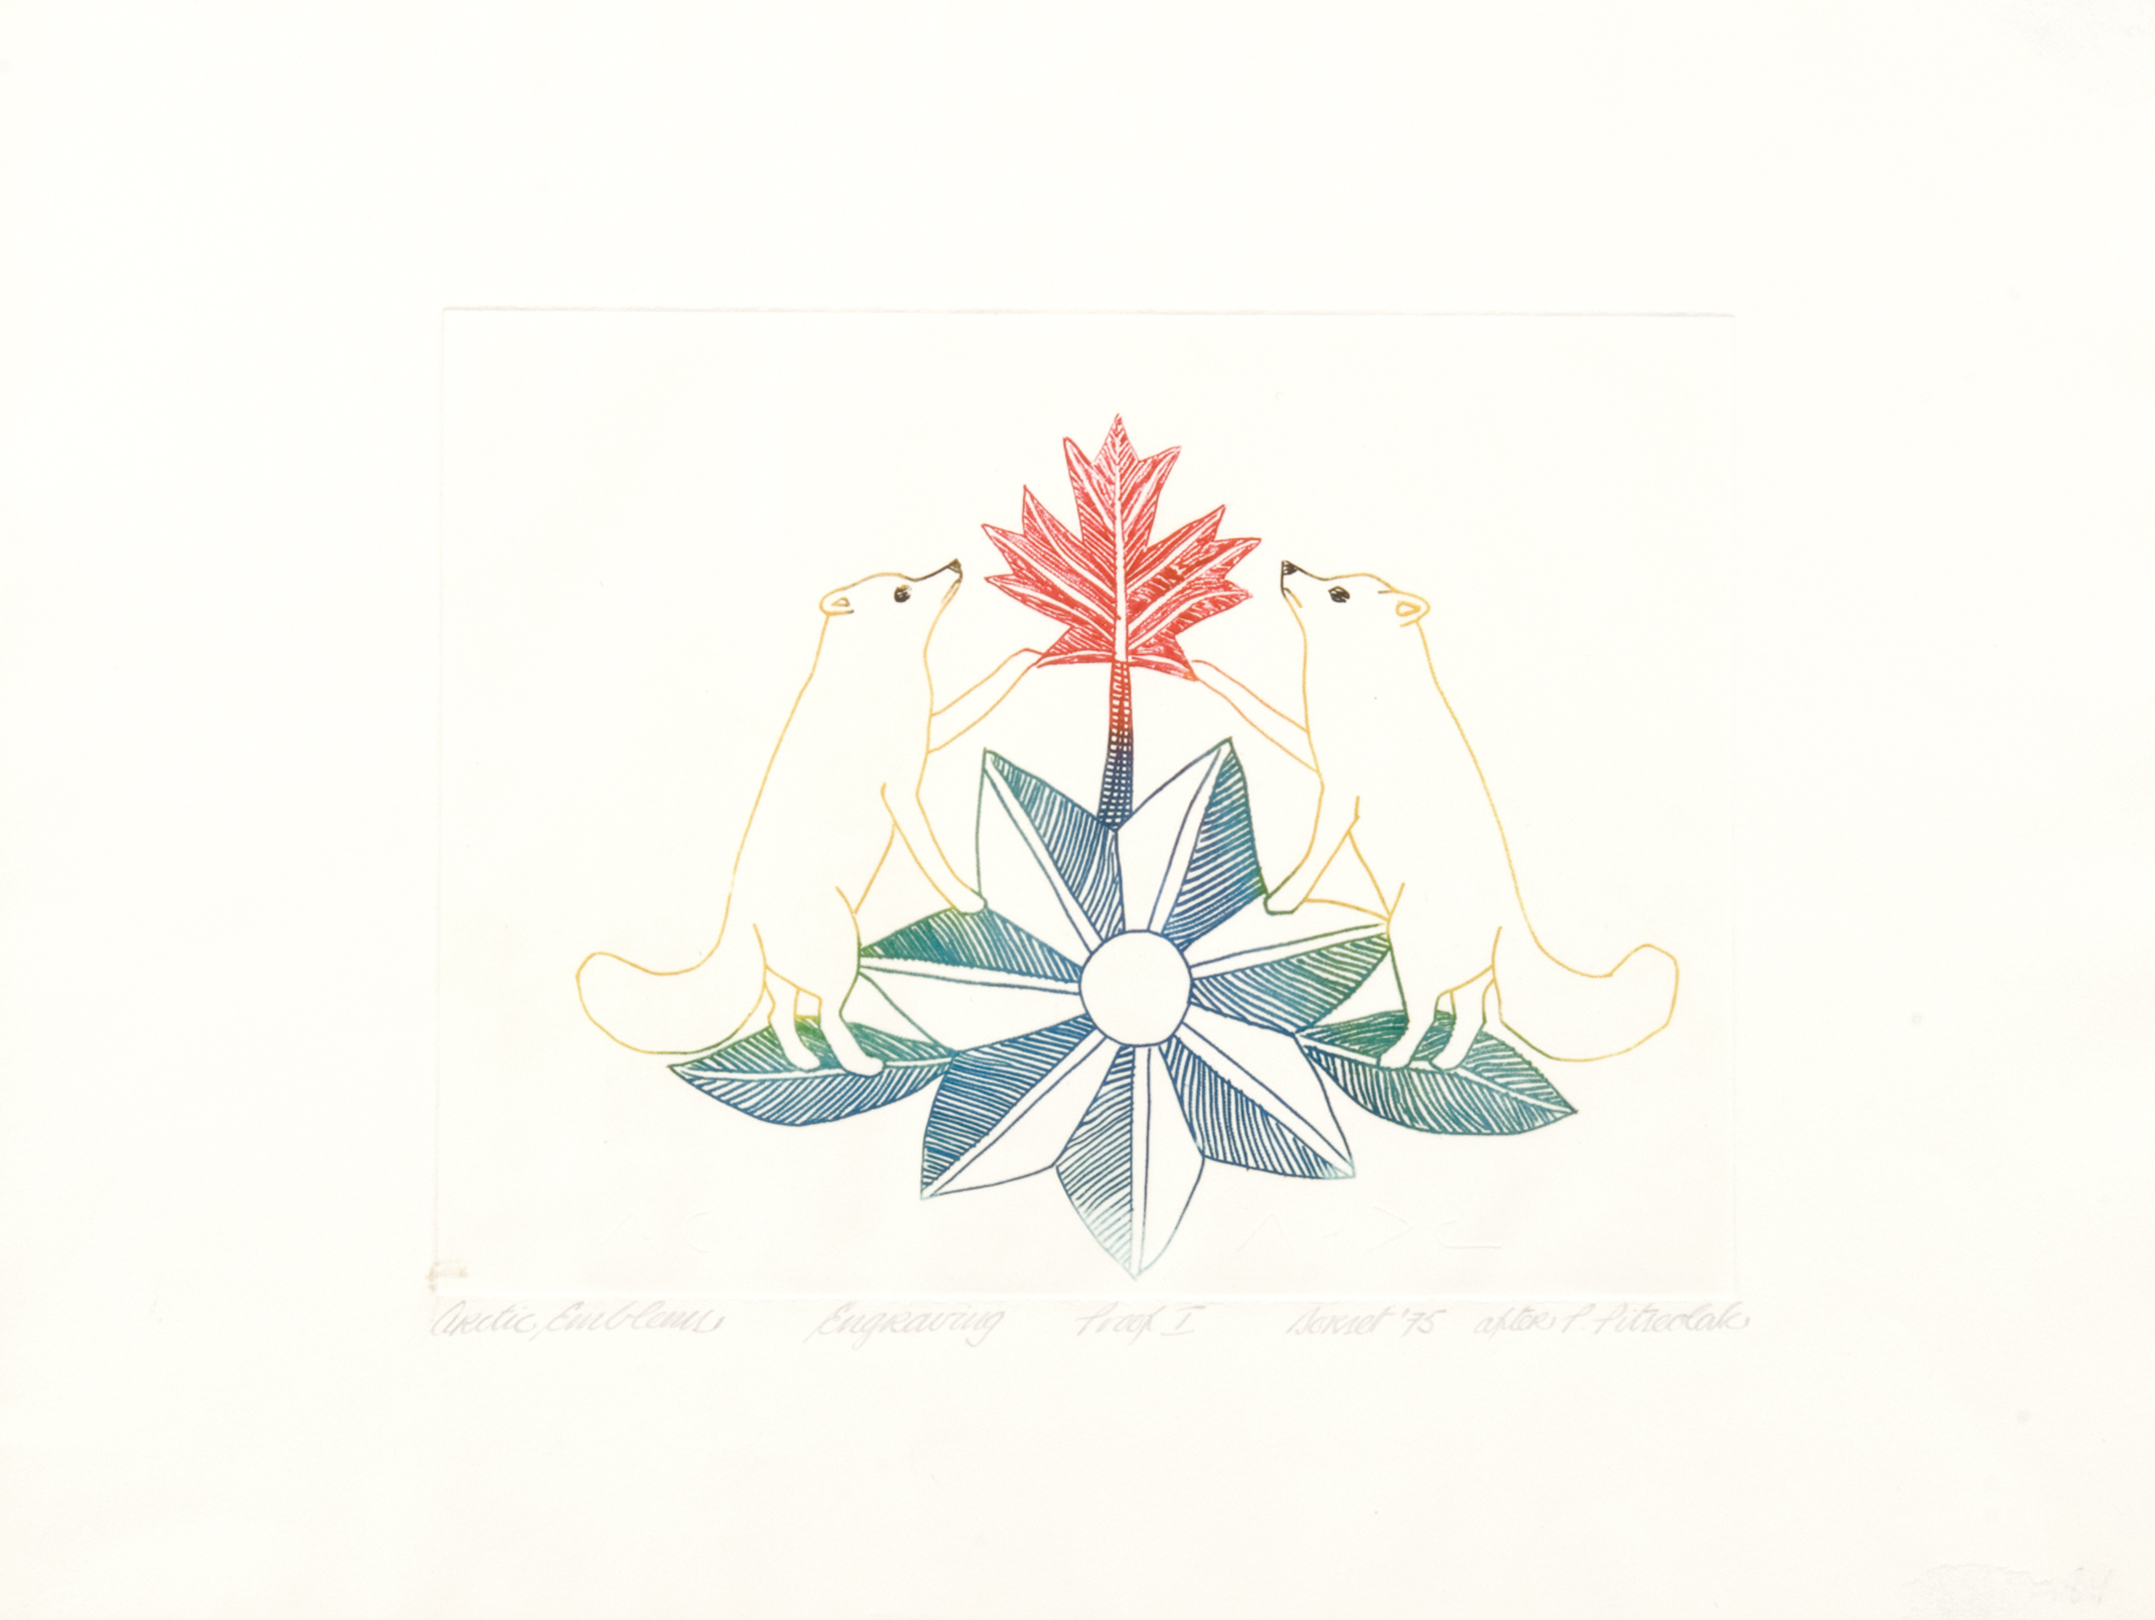 Peter Pitseolak ARCTIC EMBLEMS Engraving 1975 31.8 x 41.9 cm $350.00 CDN Released in the 1975 collection Dorset ID#: 75-74